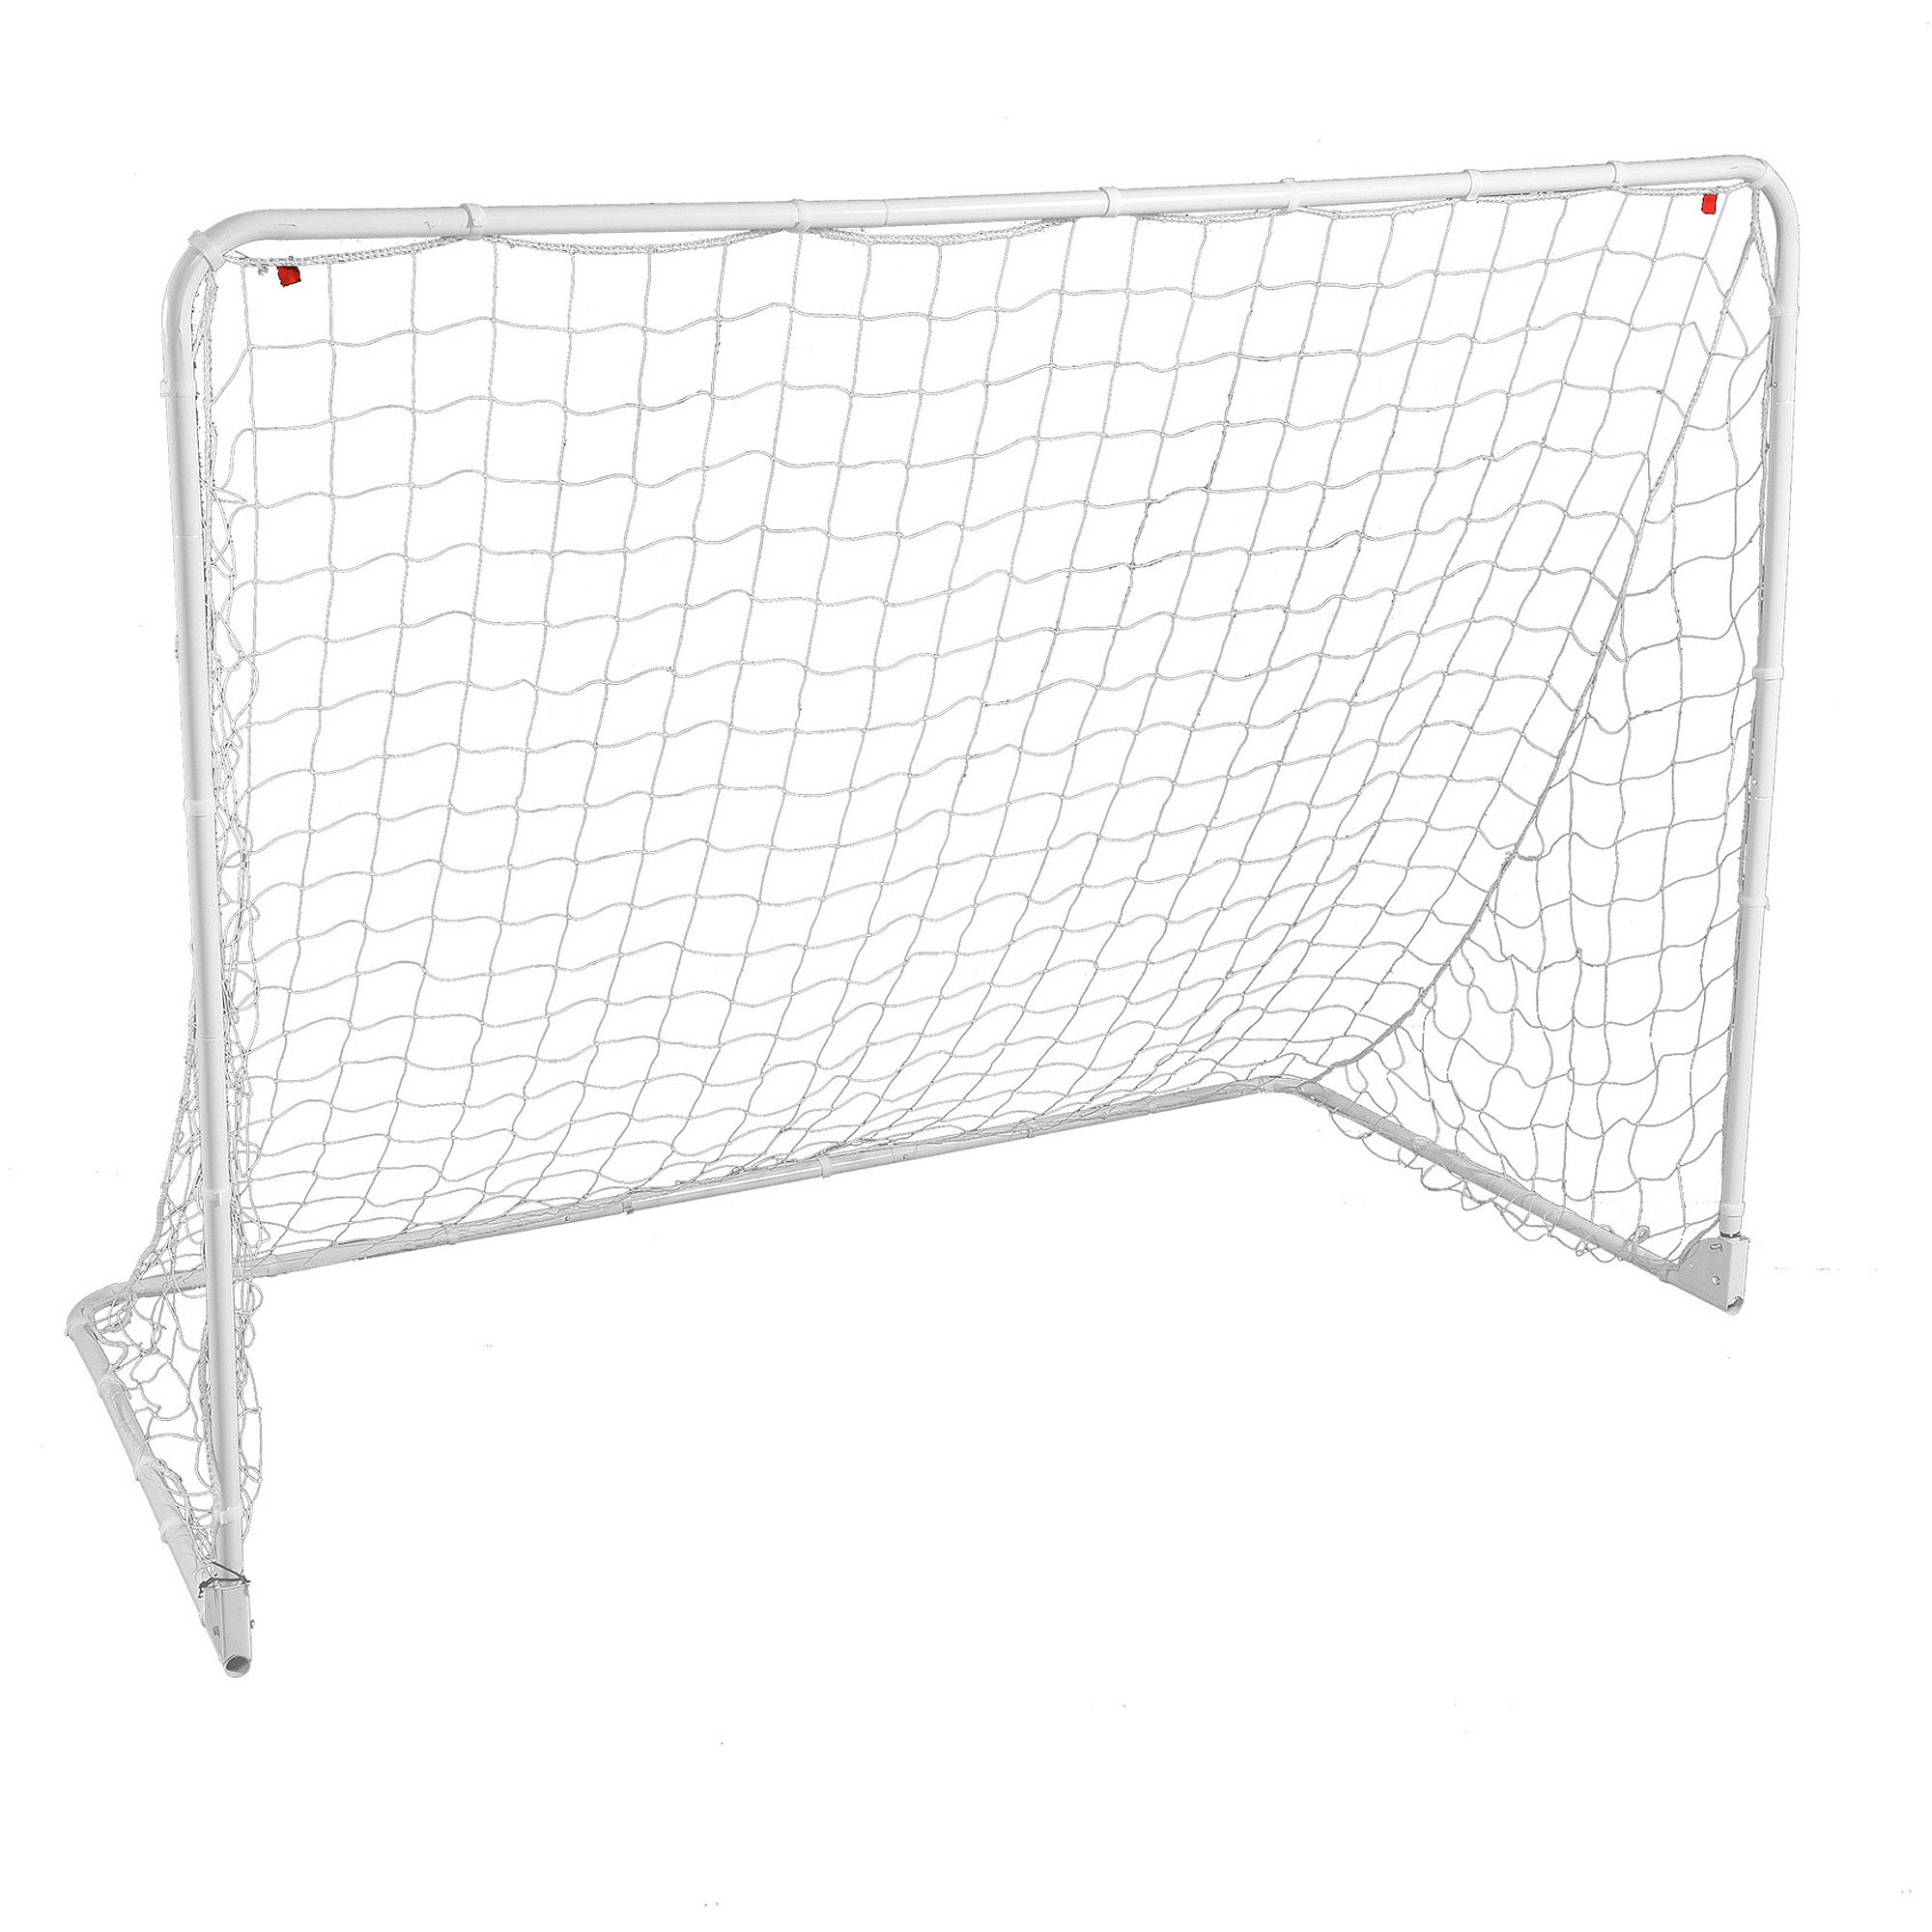 Lion Sports 8' x 6' Folding Soccer Goal